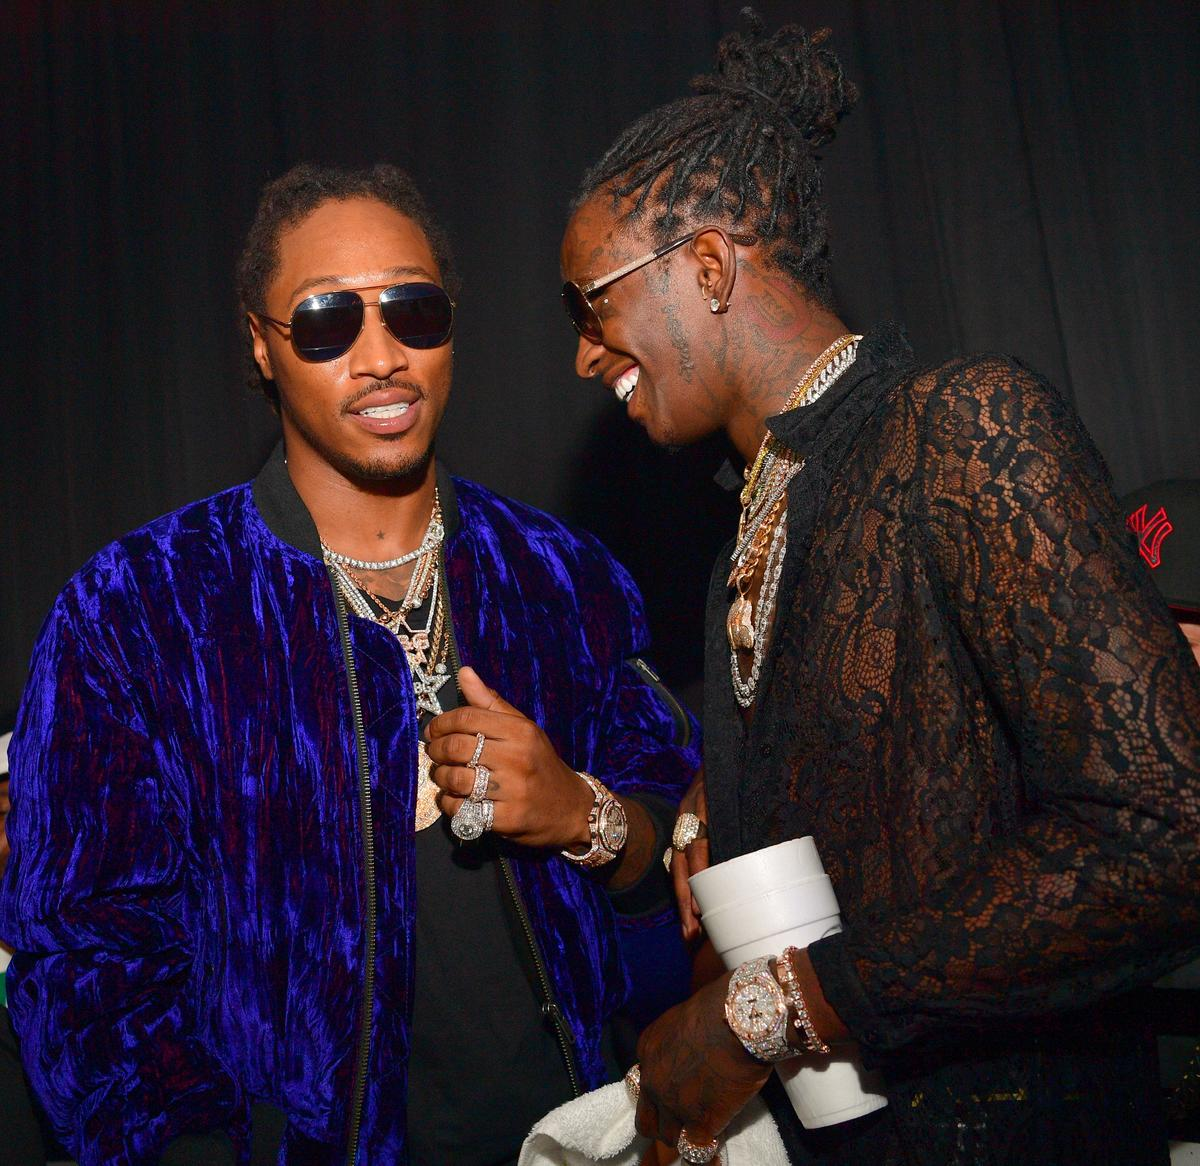 Future & Young Thug Feat.Quavo-Upscale Mp3 Download